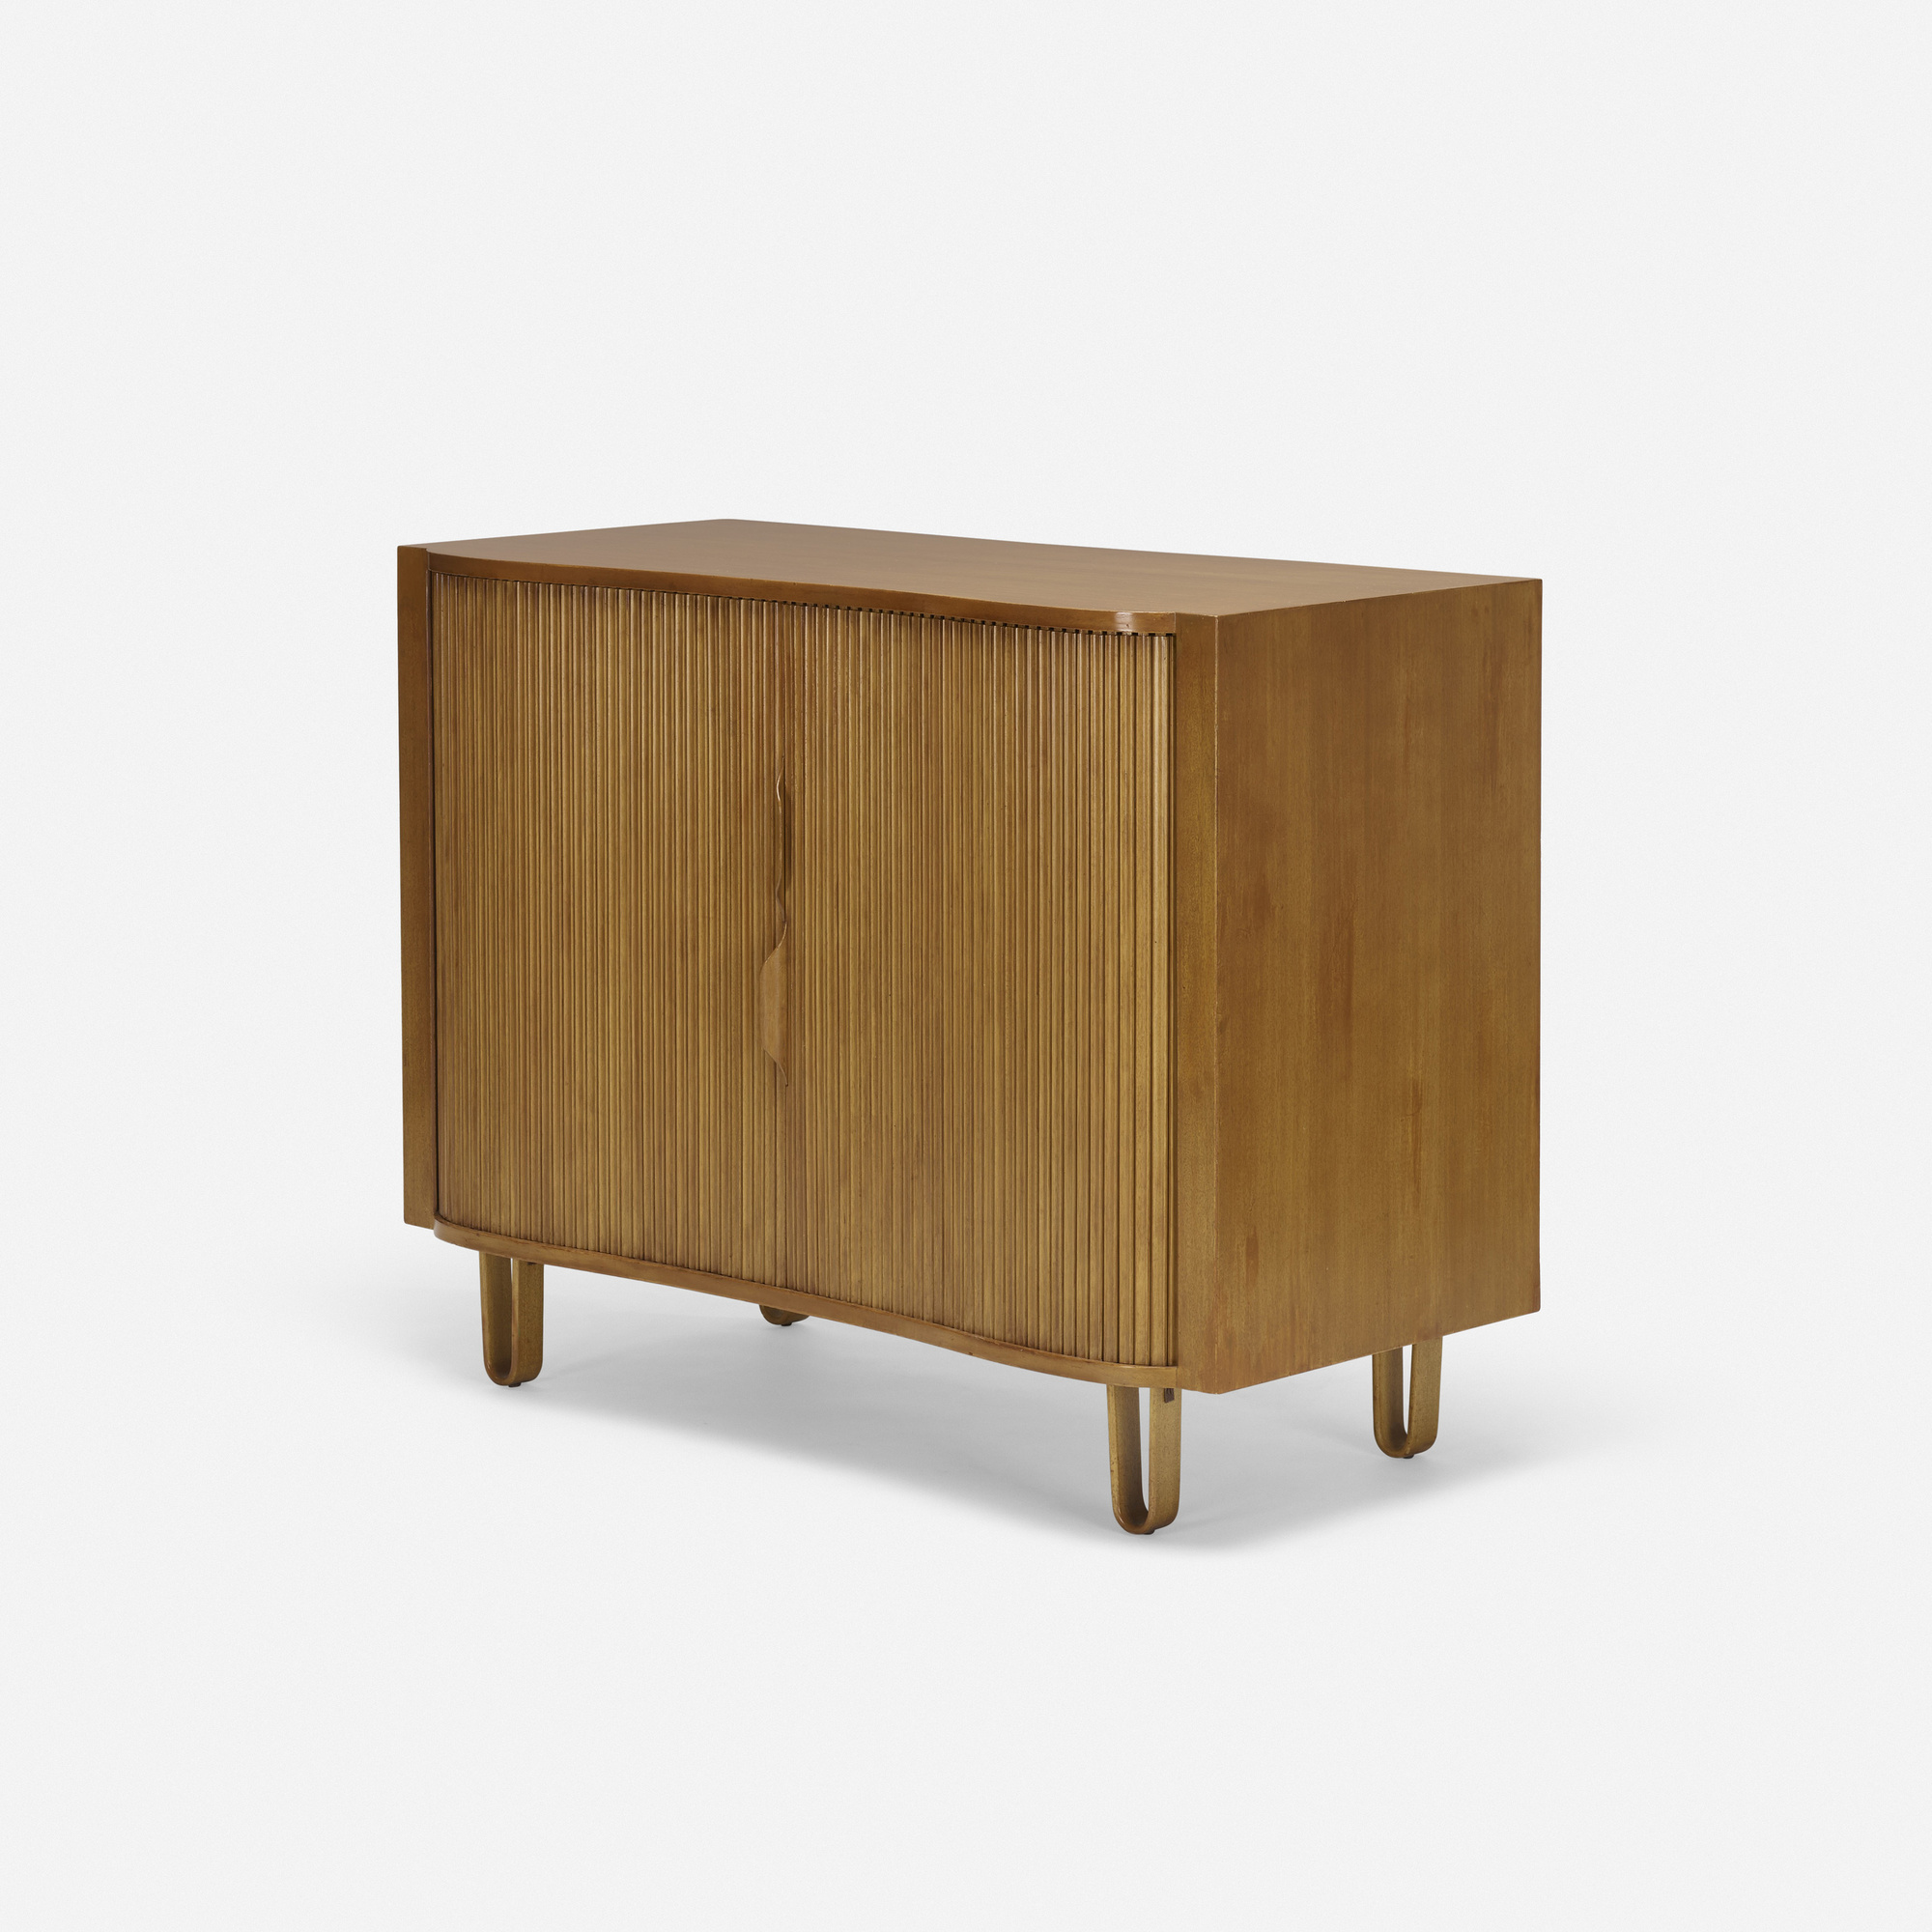 ... 387: Edward Wormley / Mr. Cabinet, Model 4723 (2 Of 4)